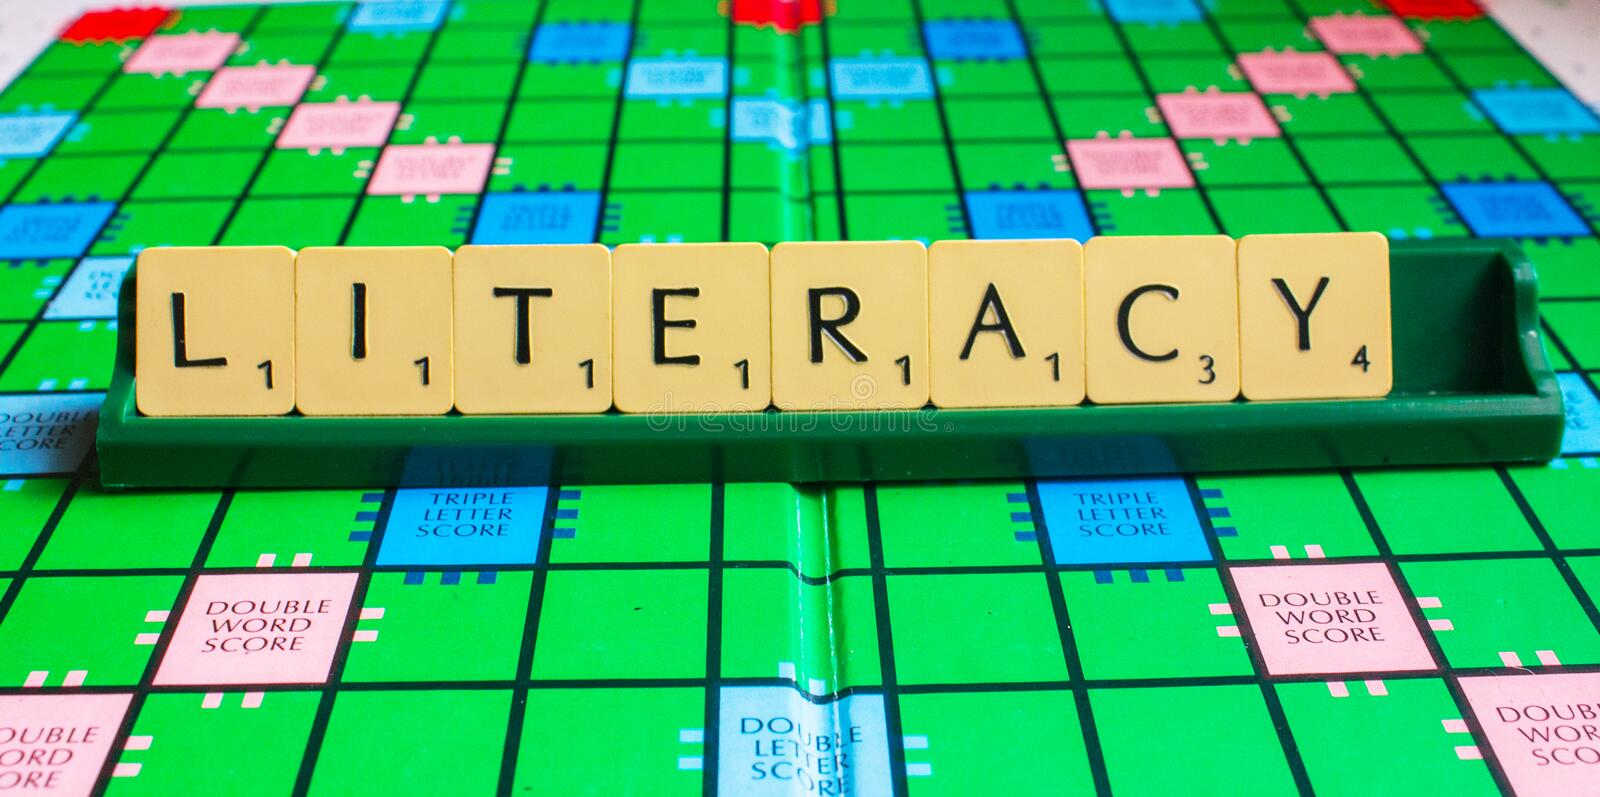 Literacy word on scrabble for use with designs. Literacy words on scrabble for use with designs or as wallpaper background stock image